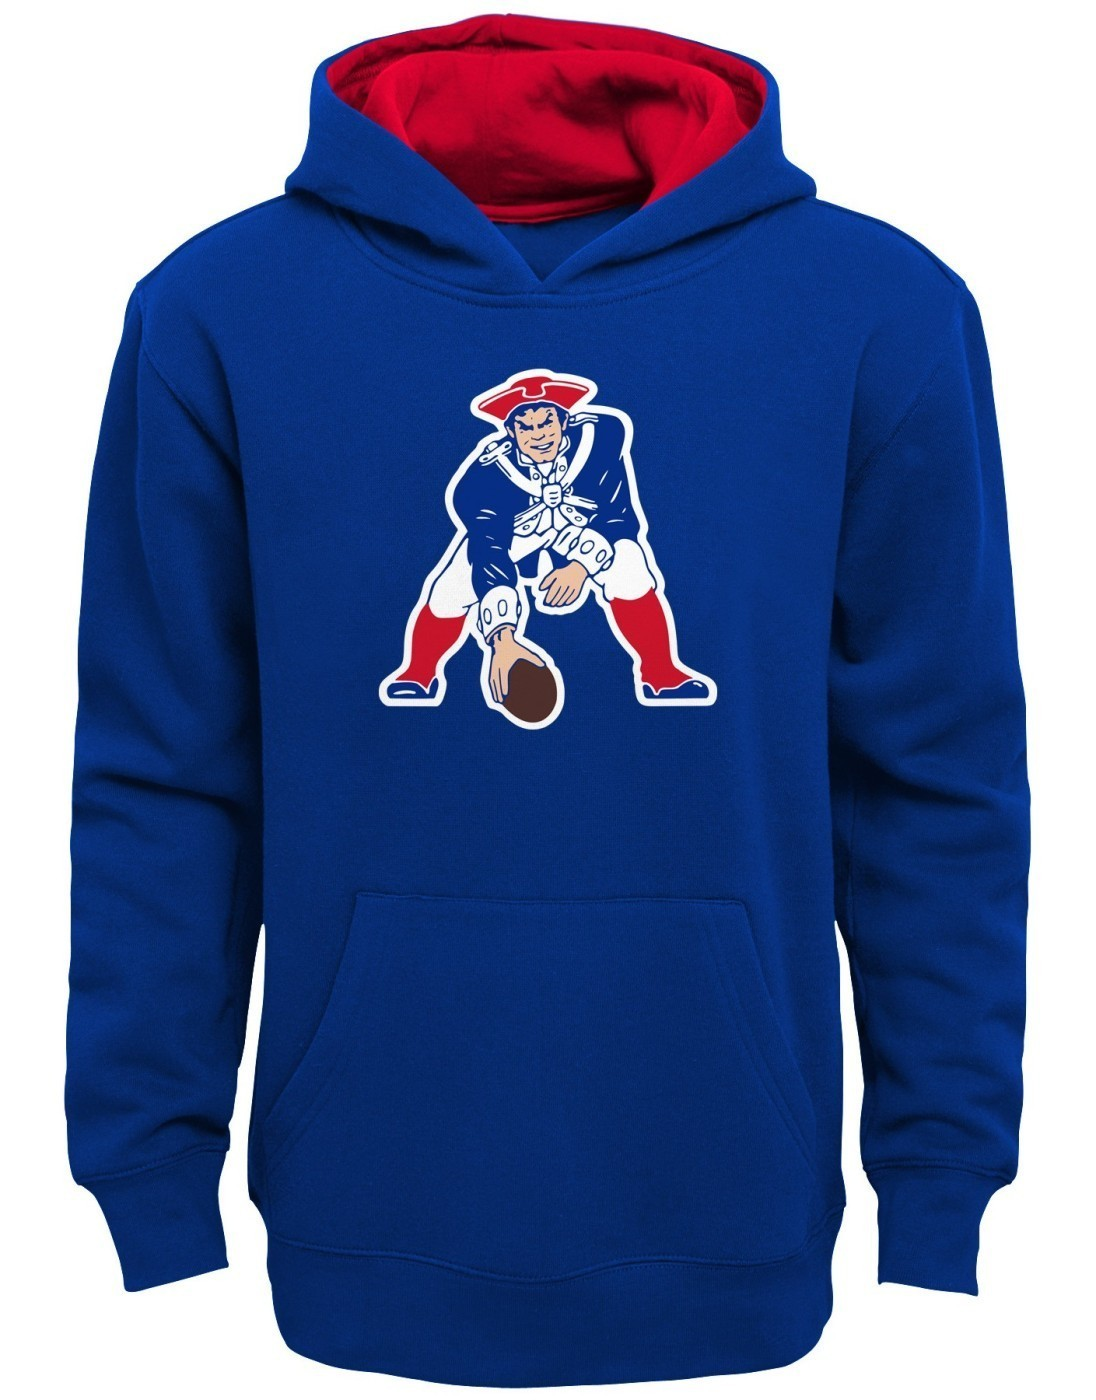 online retailer 0b3ce bb80c Details about New England Patriots Youth NFL